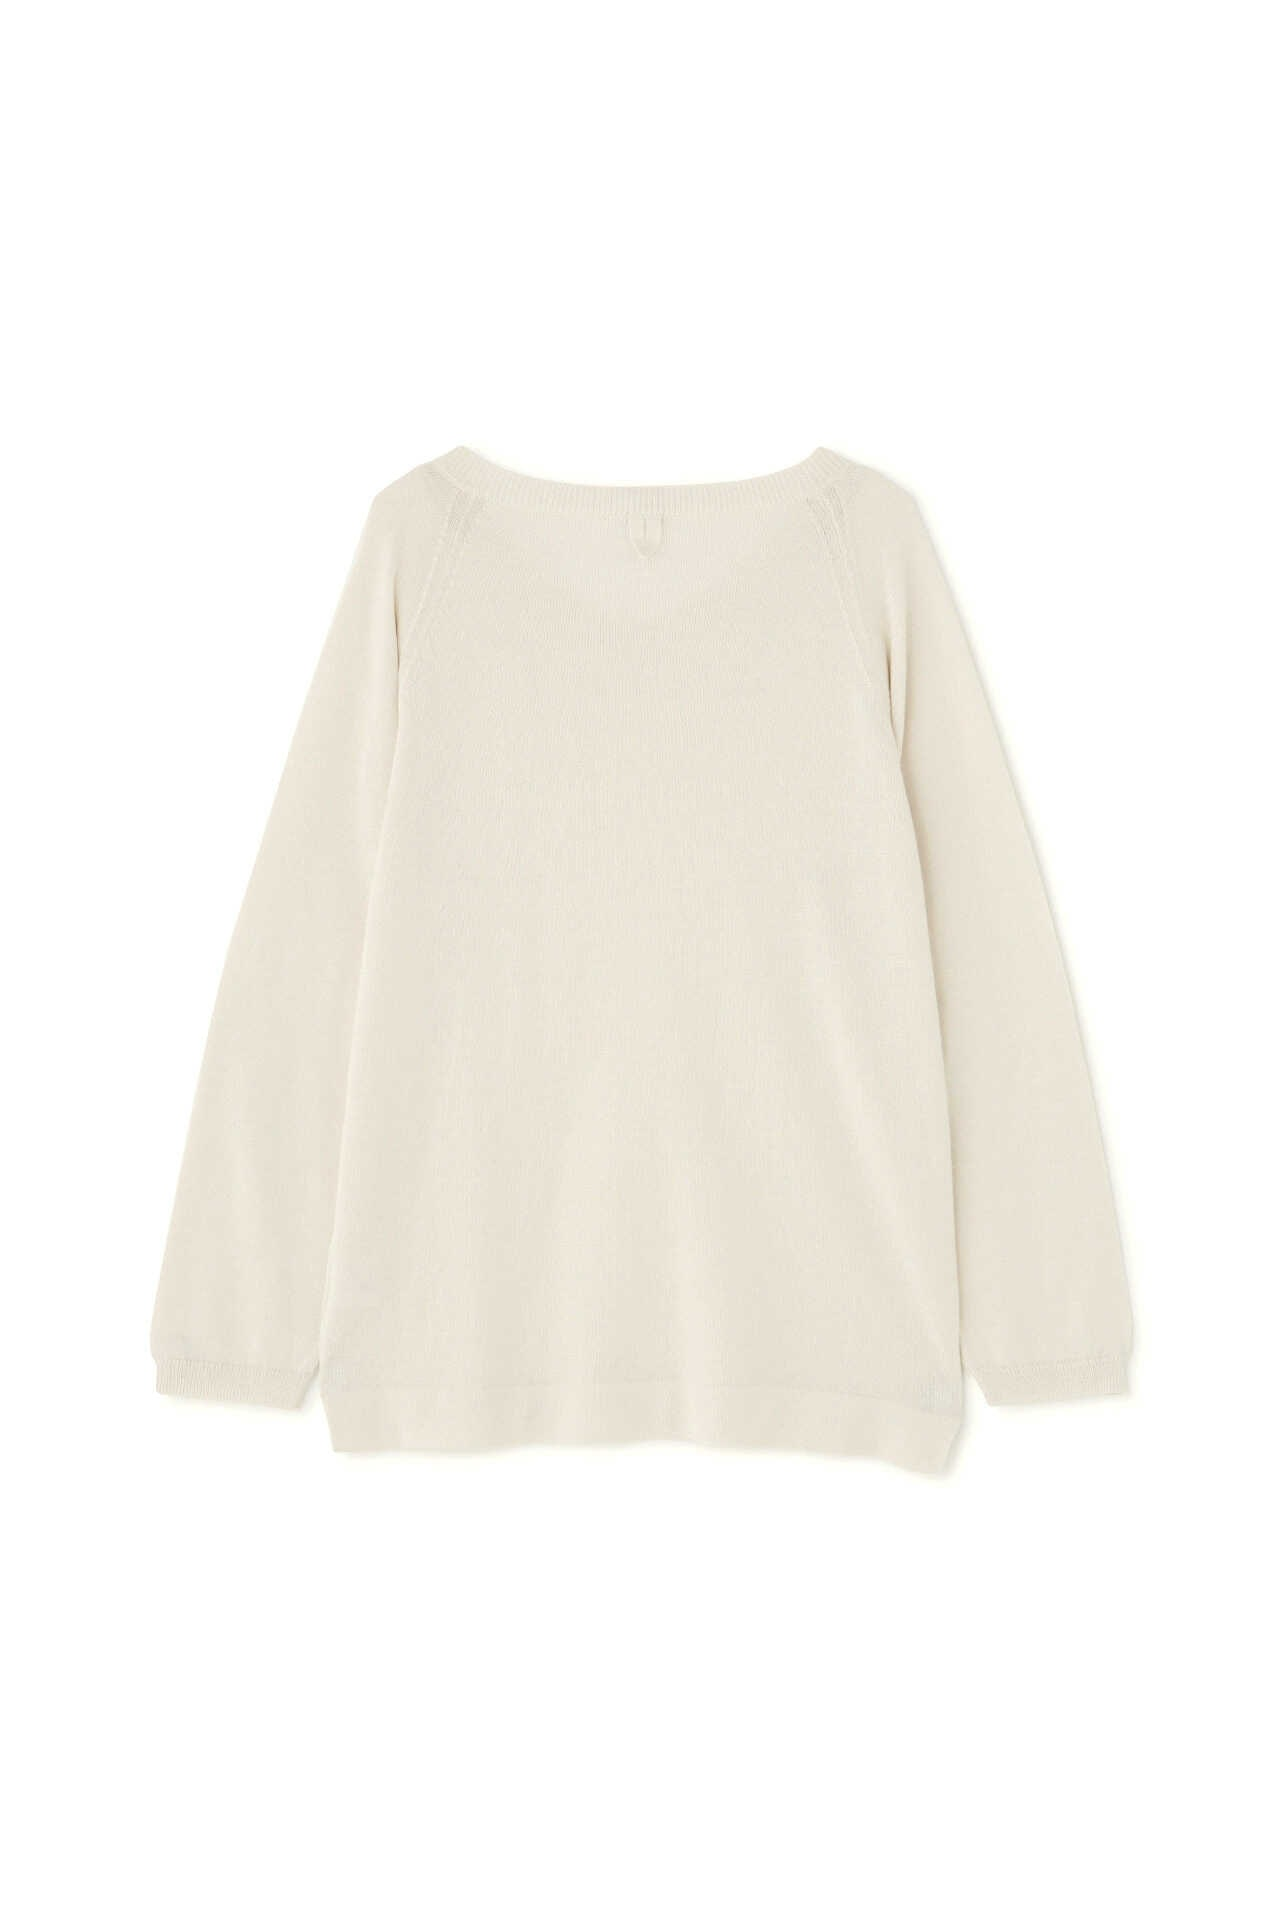 RELAXED COTTON JUMPER8